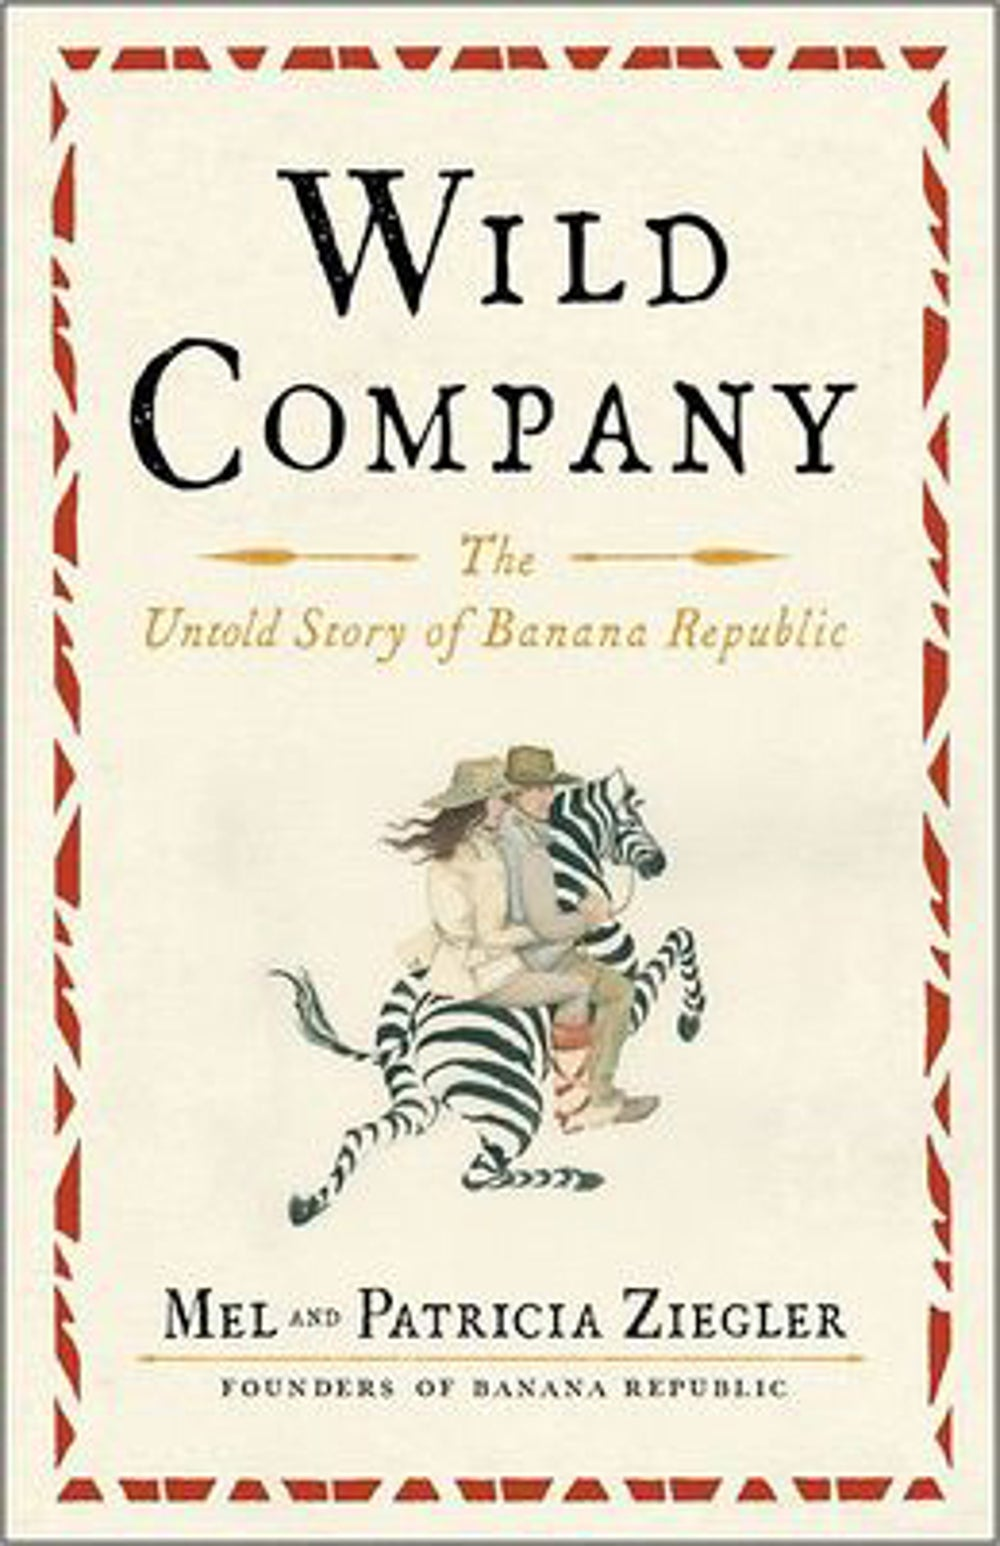 Wild Company by Mel and Patricia Ziegler